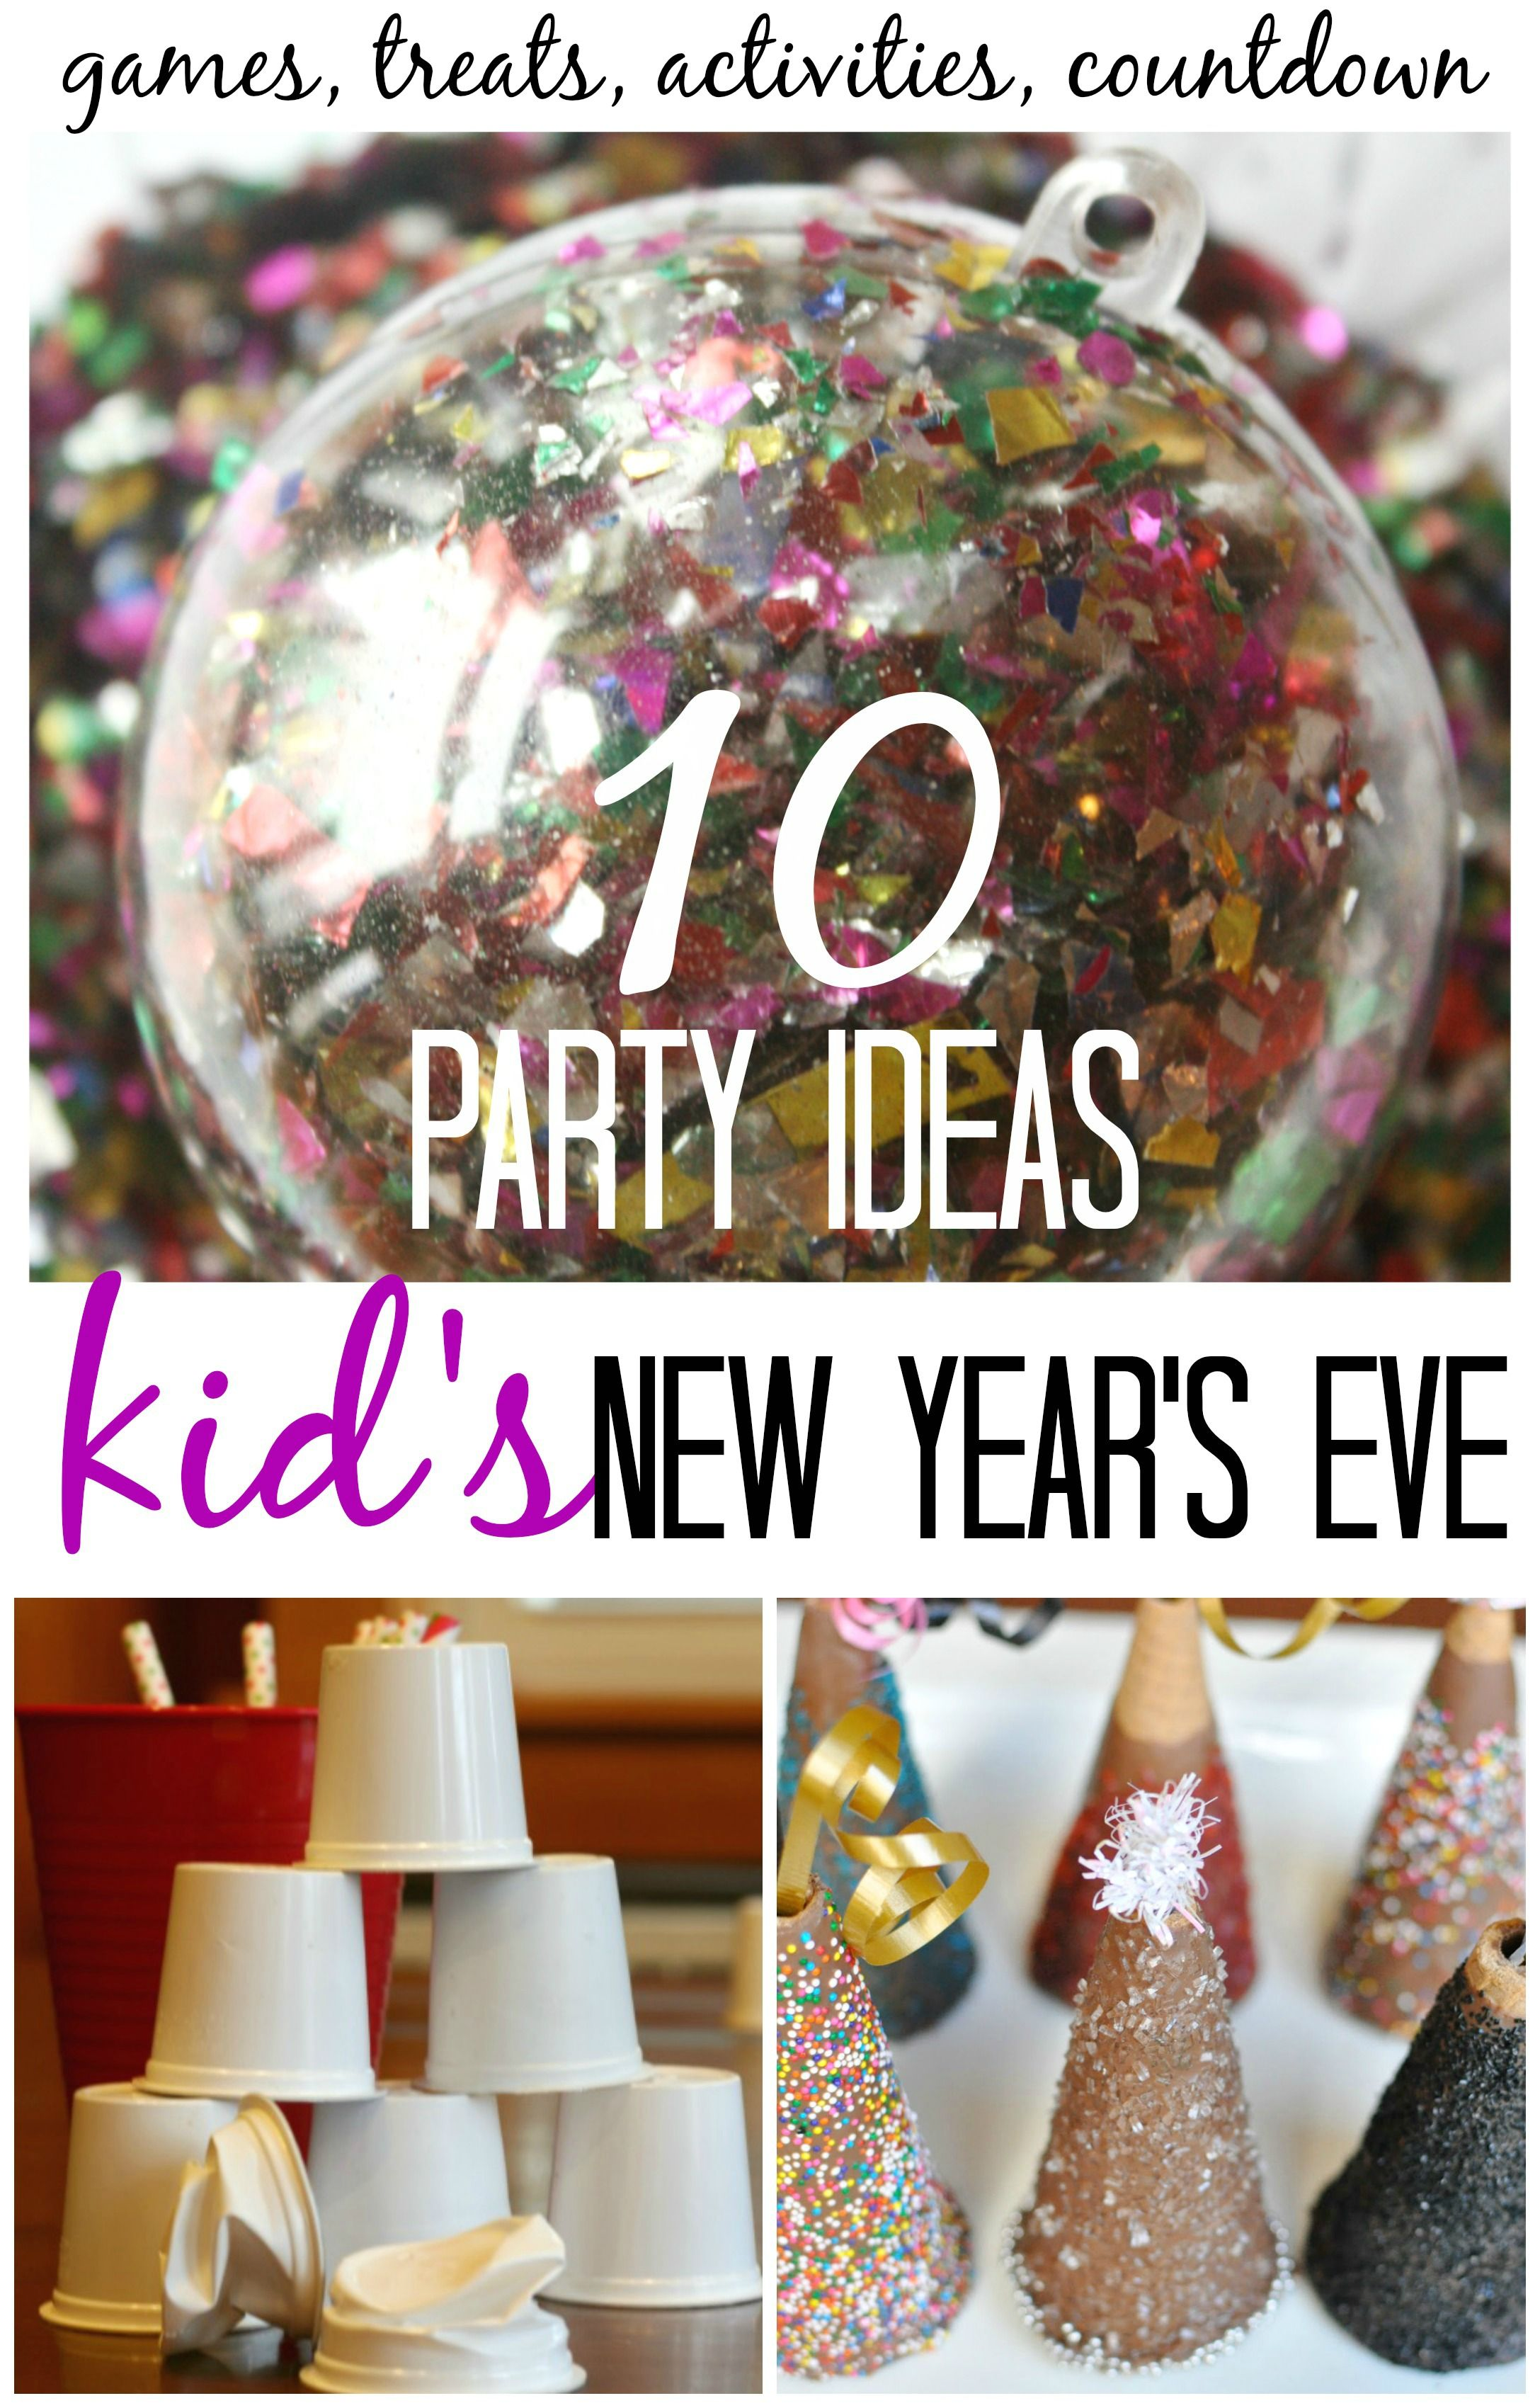 Kids New Years Eve Party Ideas and Activities for New